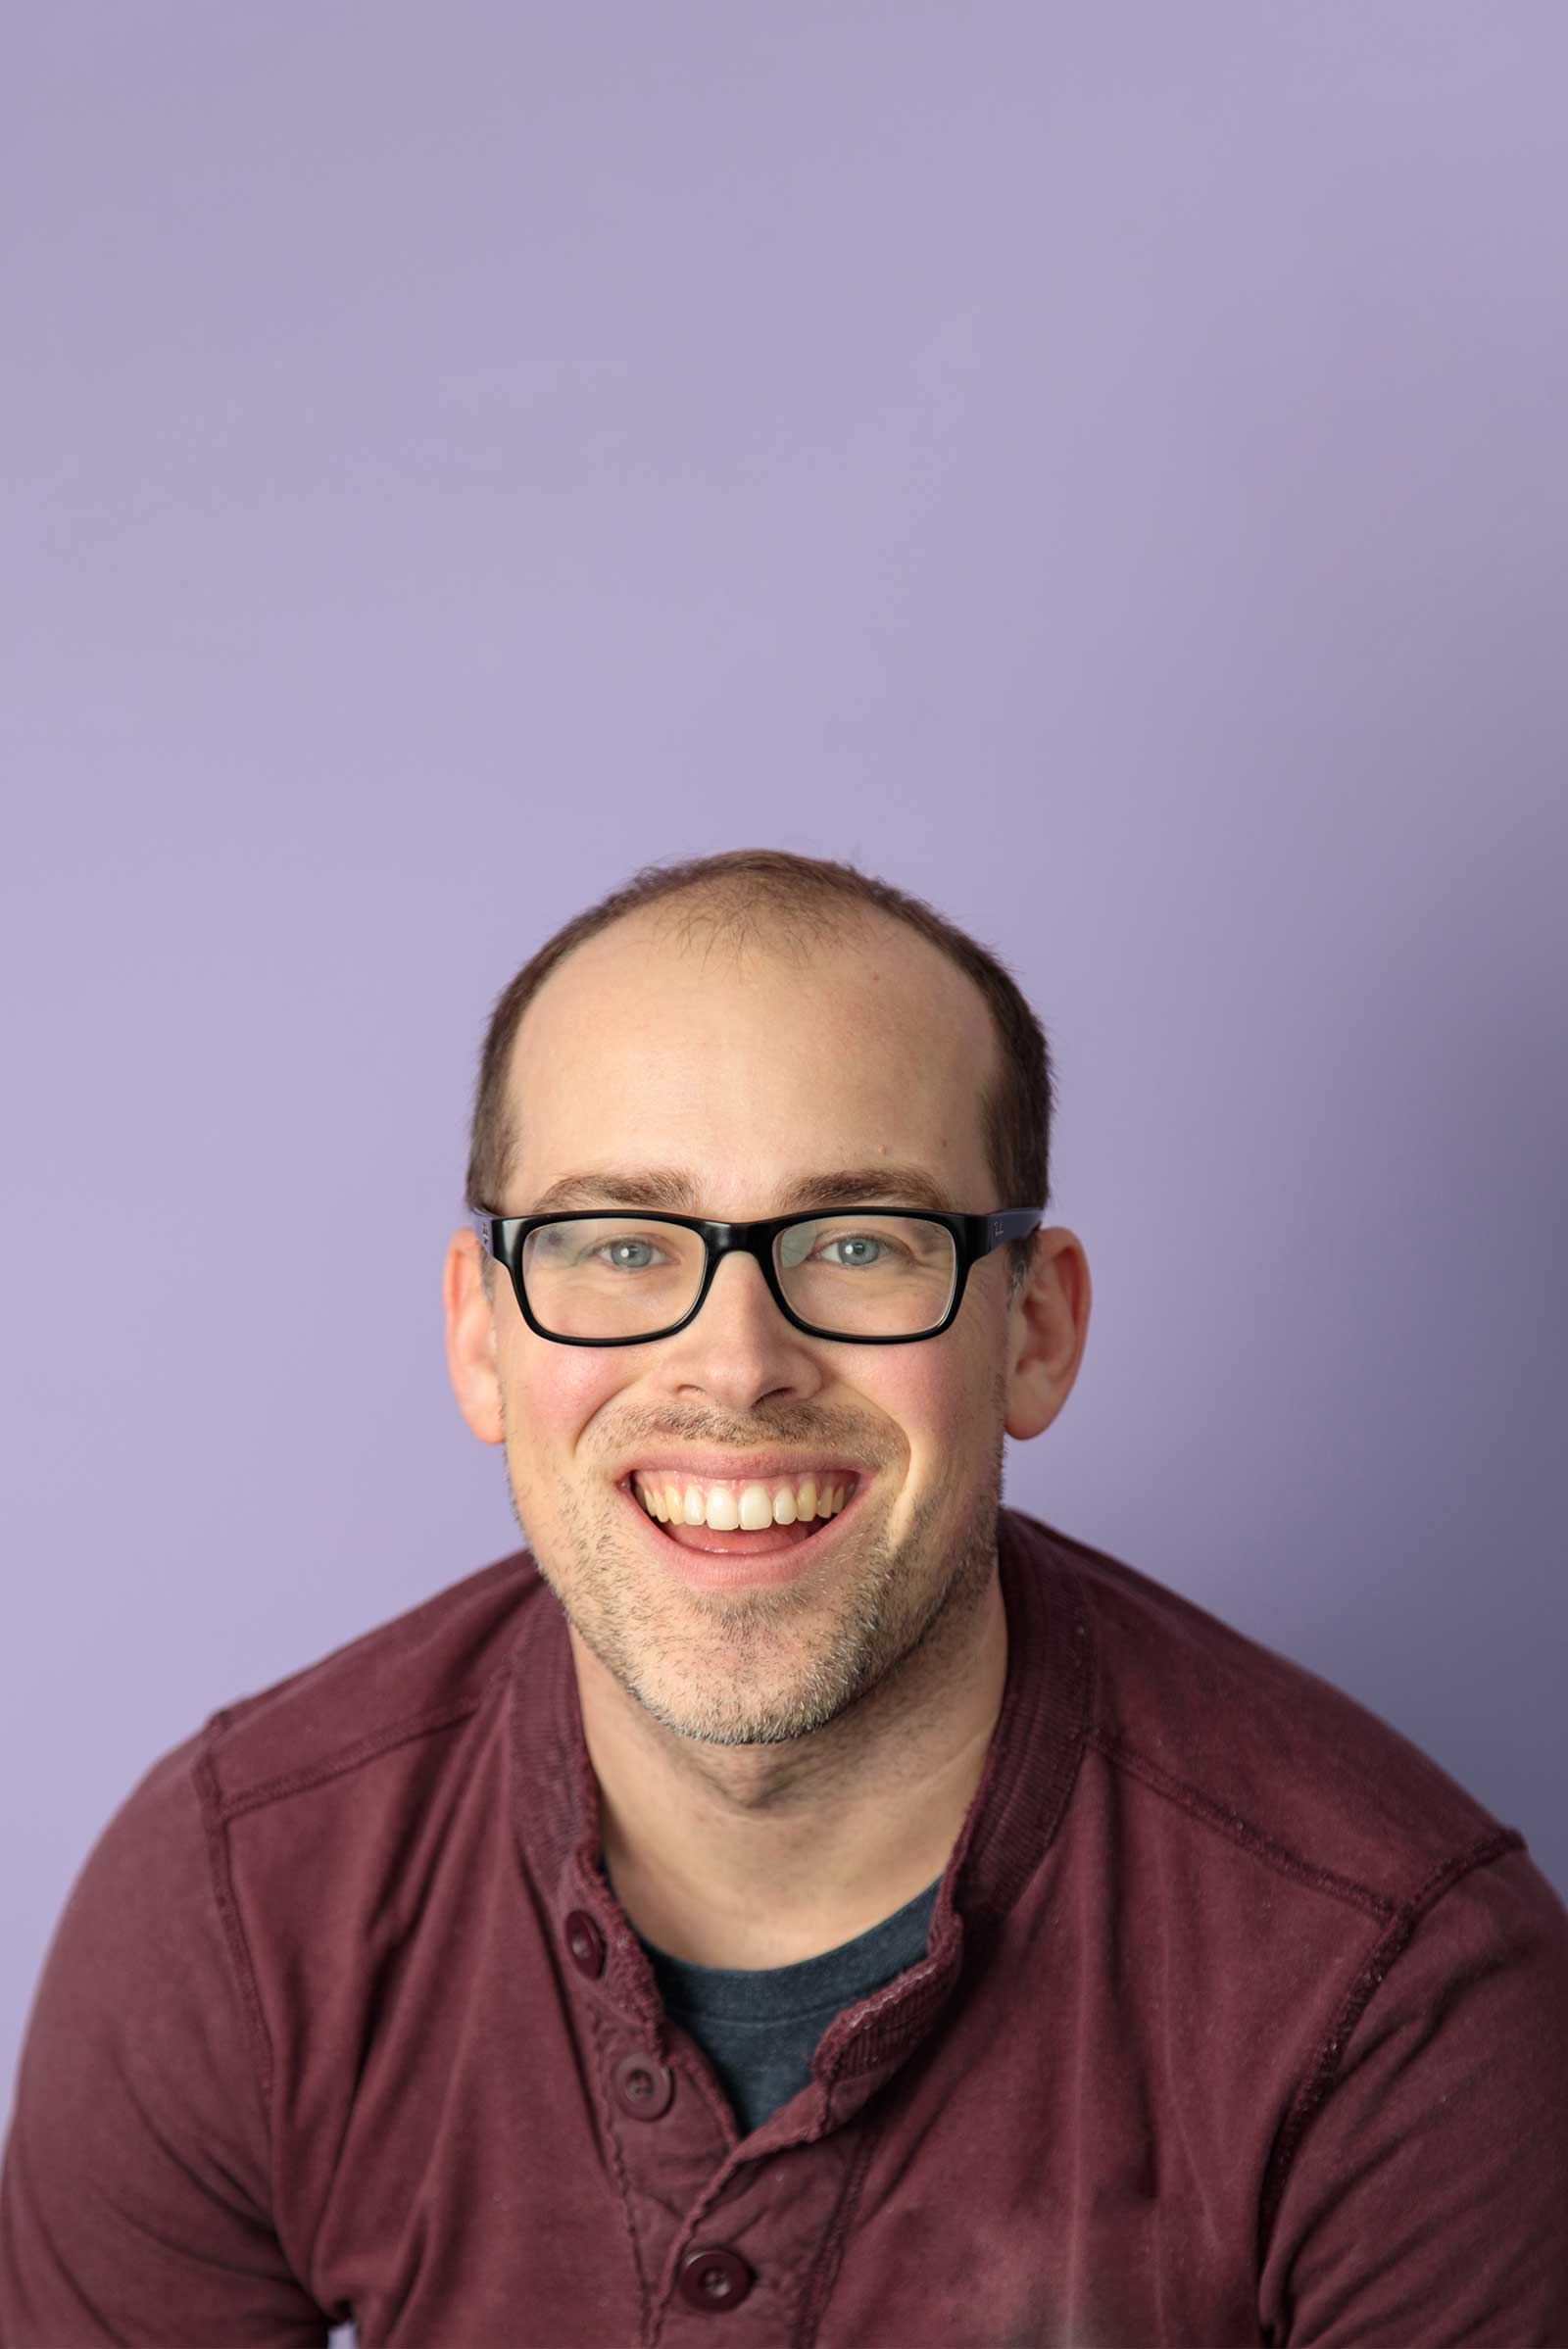 A portrait of a man in a maroon sweater agains a purple backdrop.